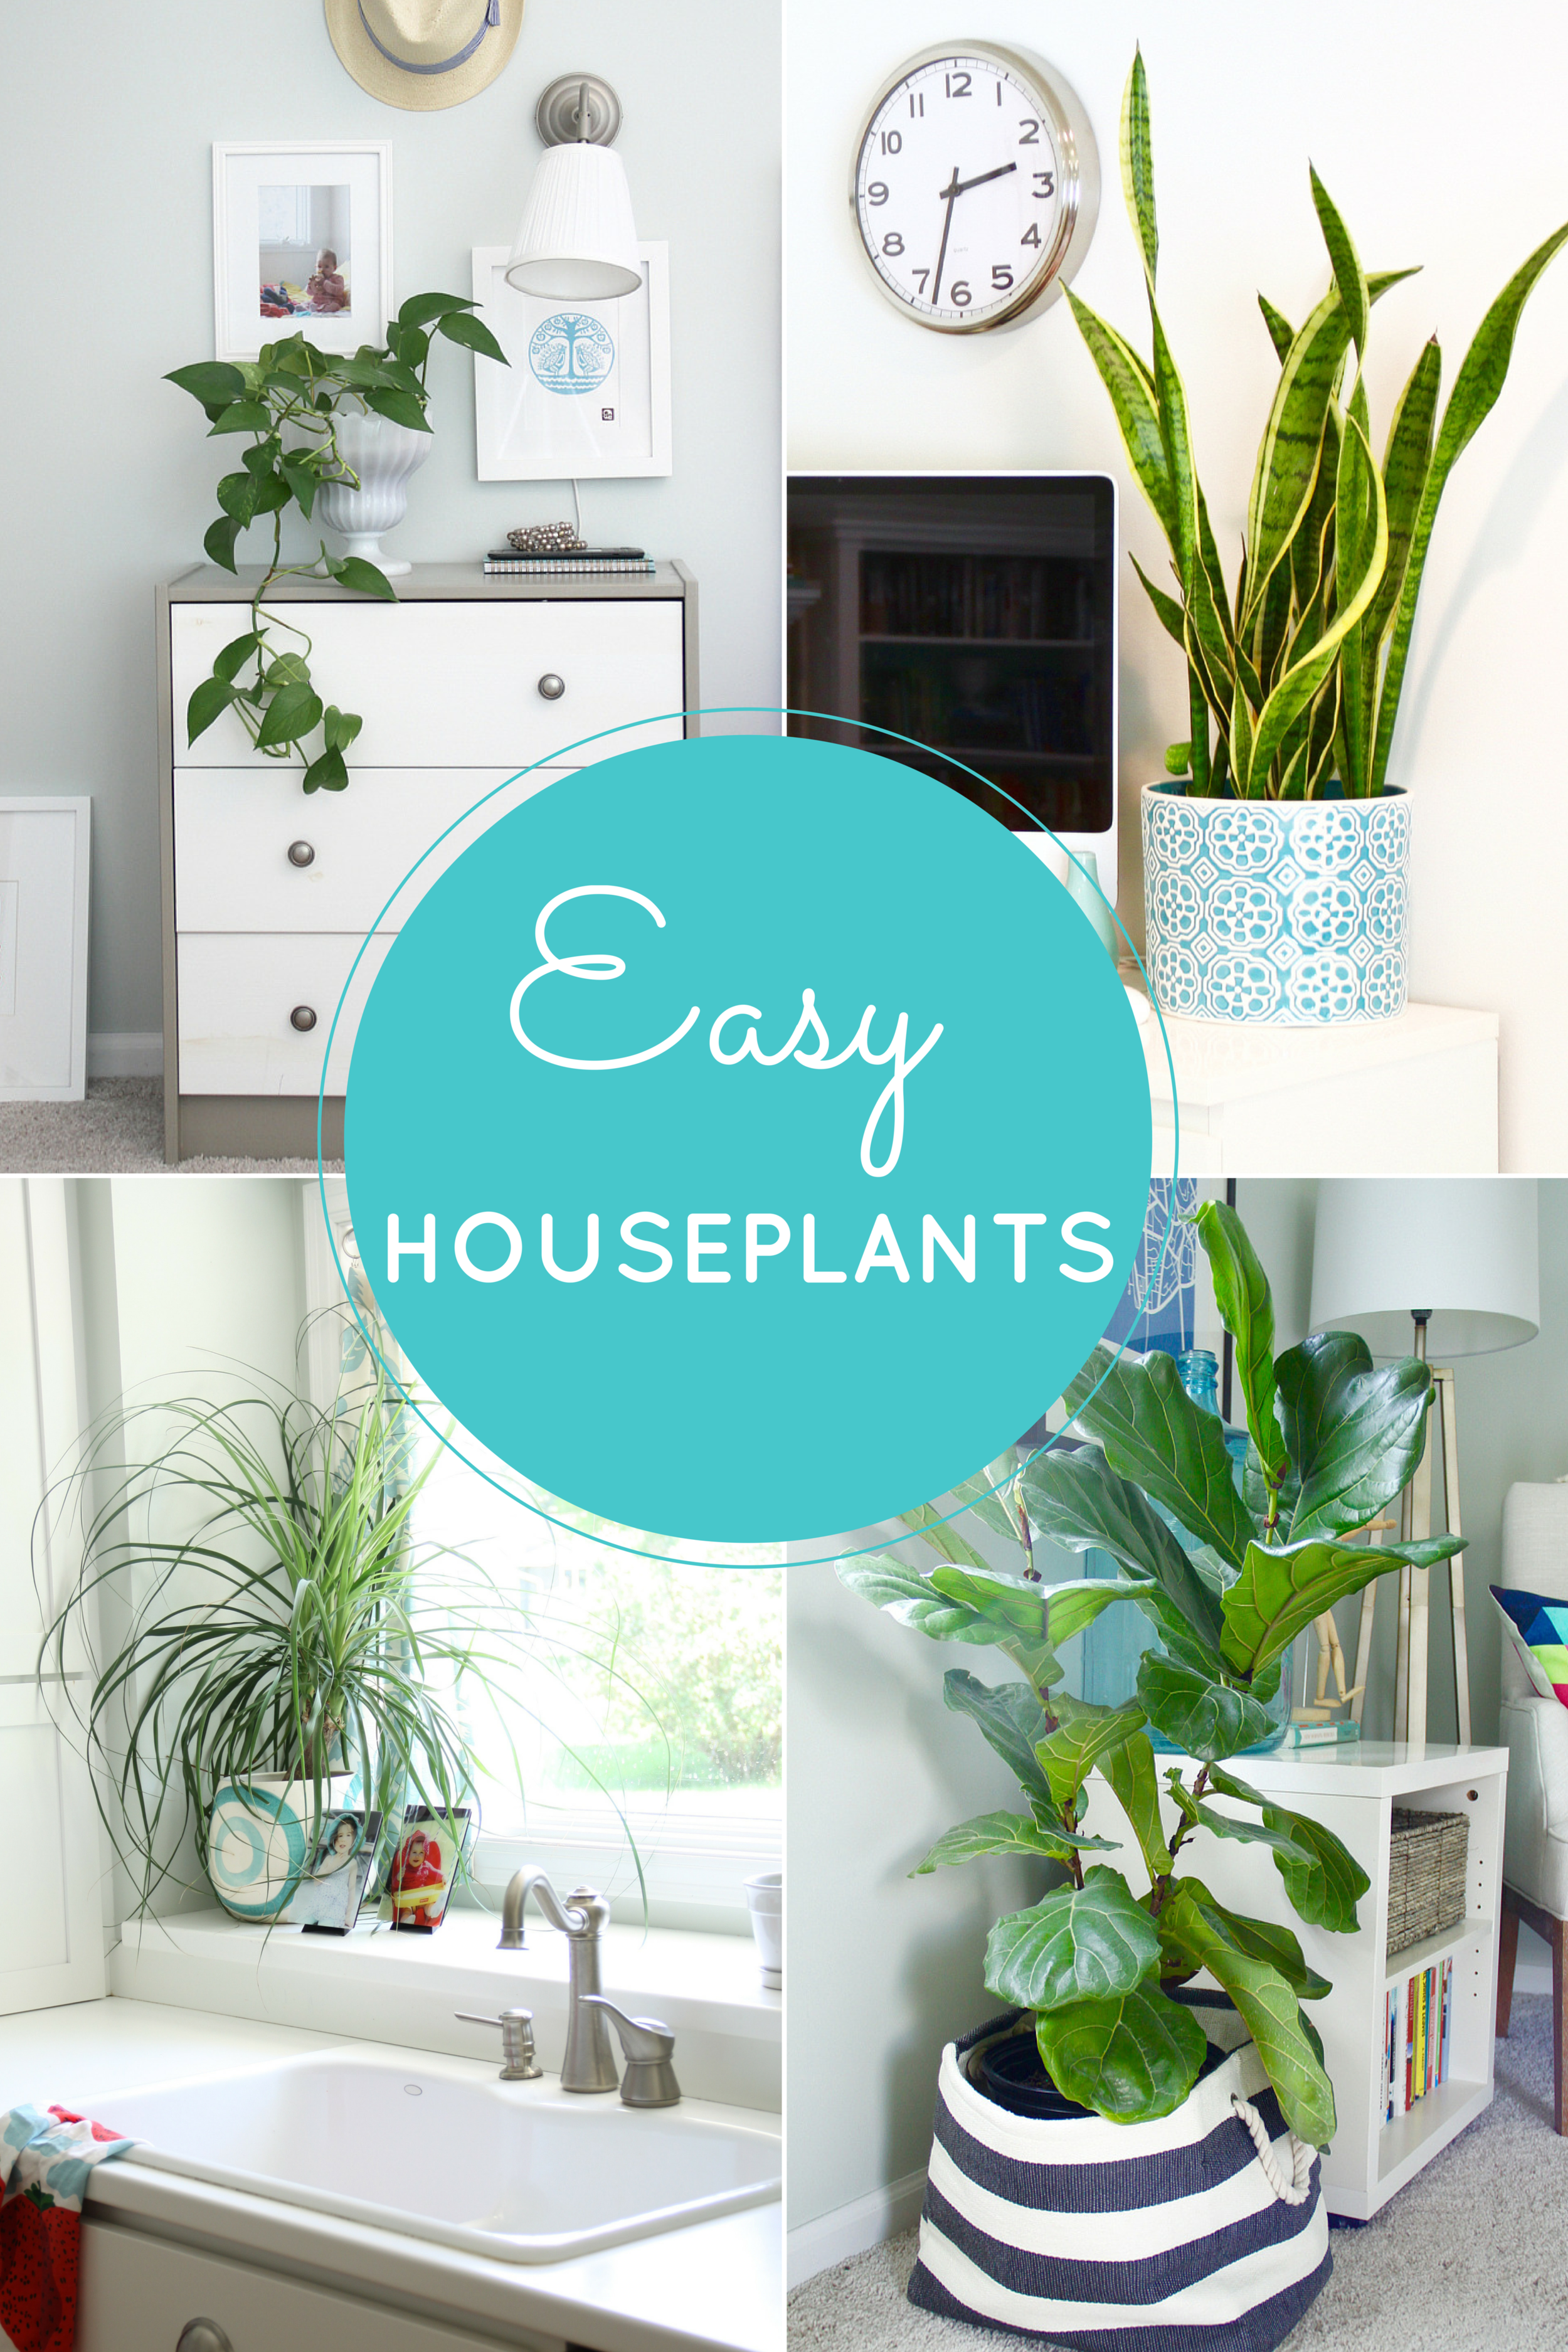 Easy Houseplants: 4 Indoor Plants to Beautify Your Spaces